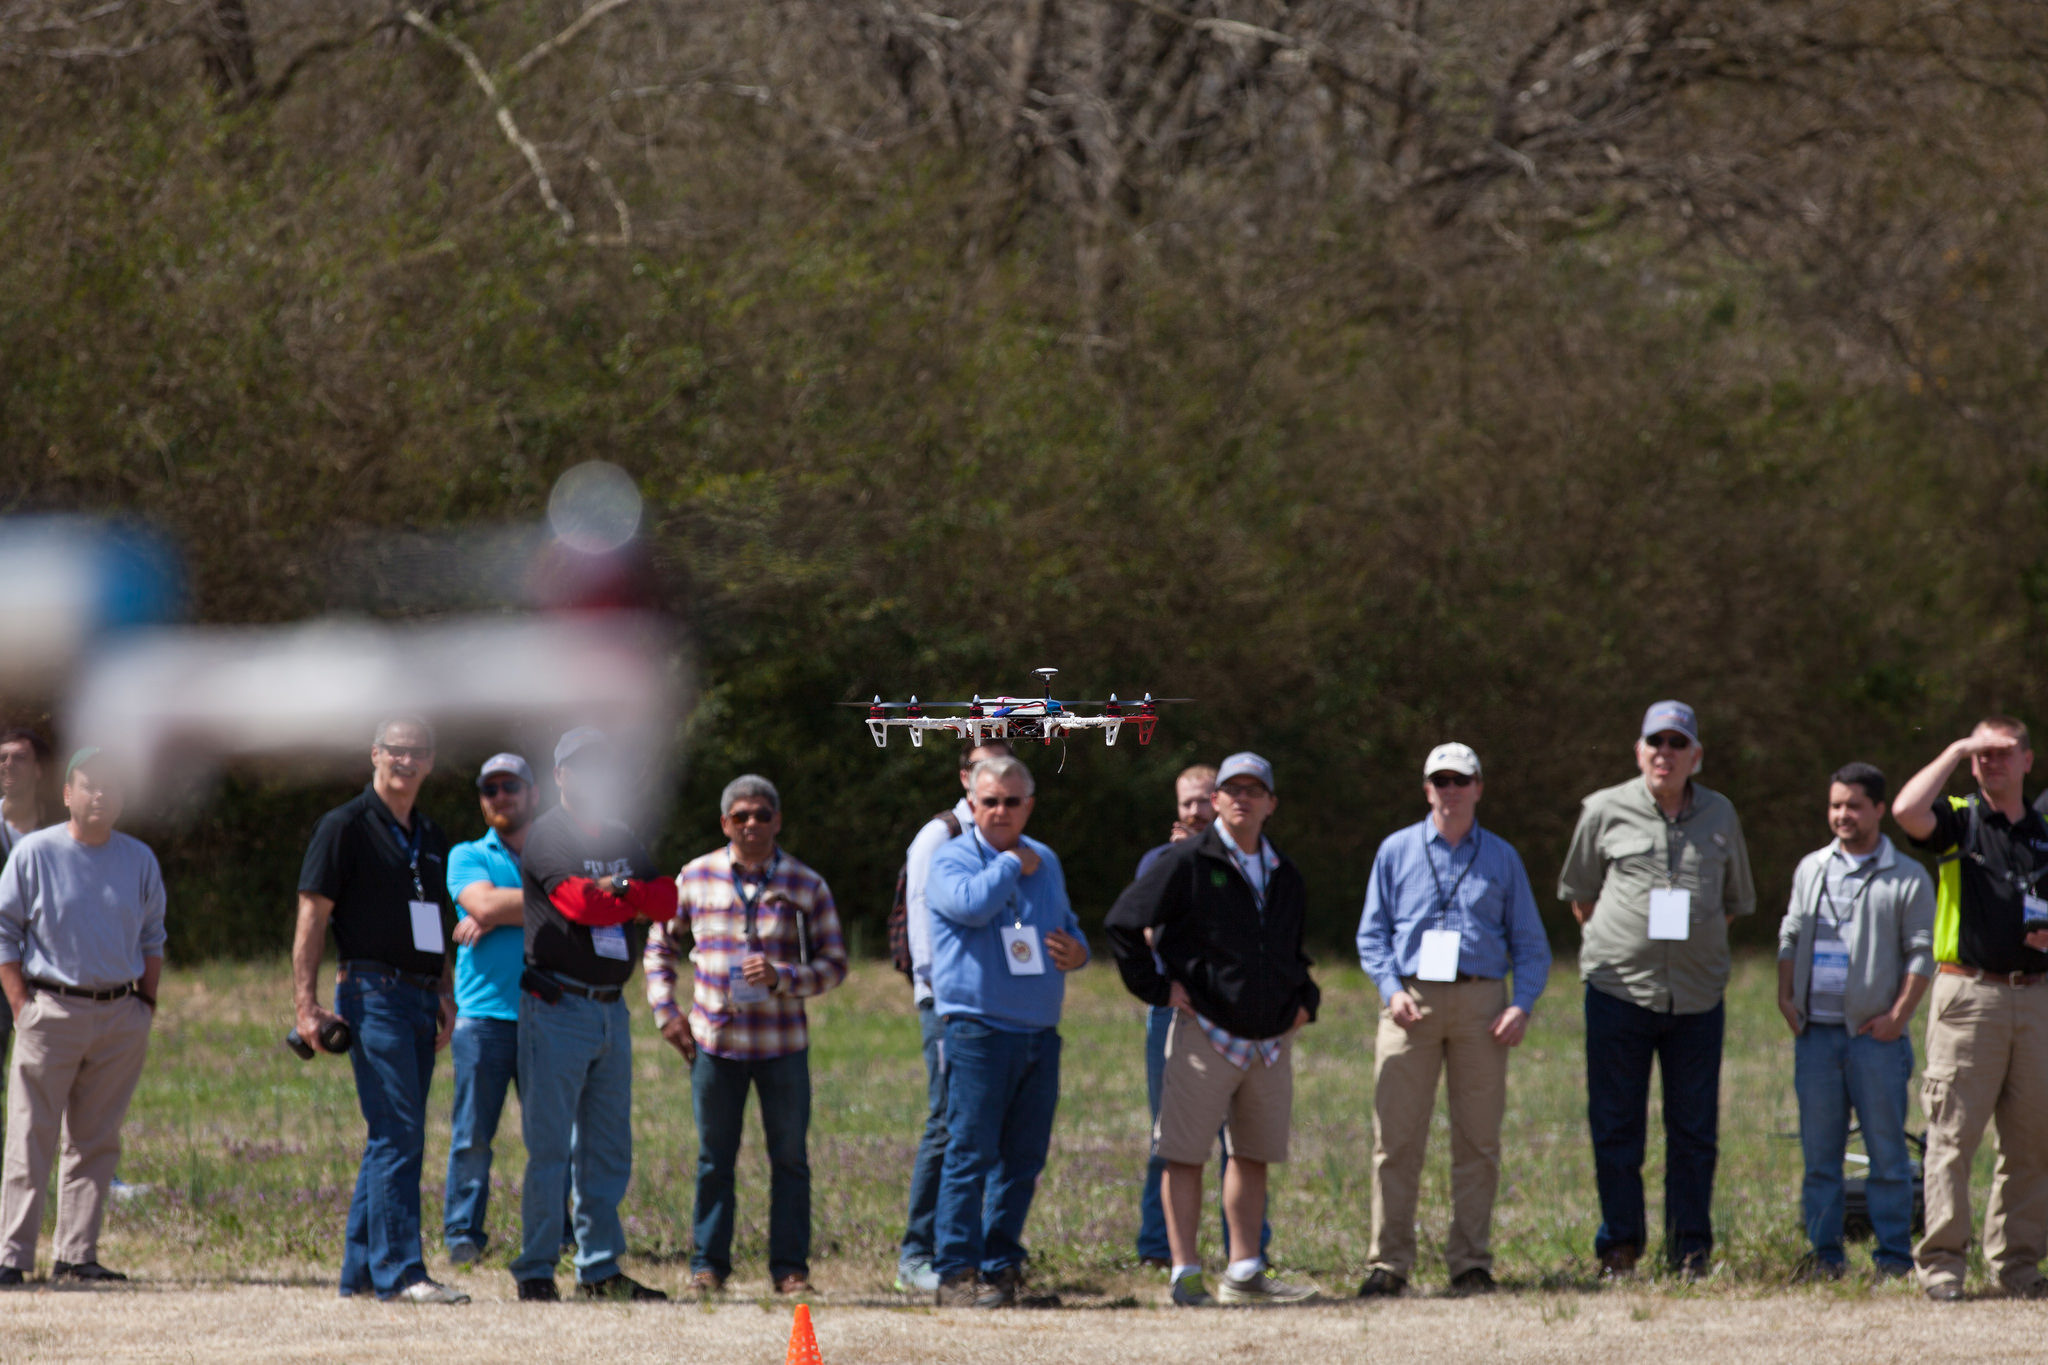 UAV/SUAS CLASS V – ATLANTA 2015, The Academy of Model Aviation, March 21, 2015